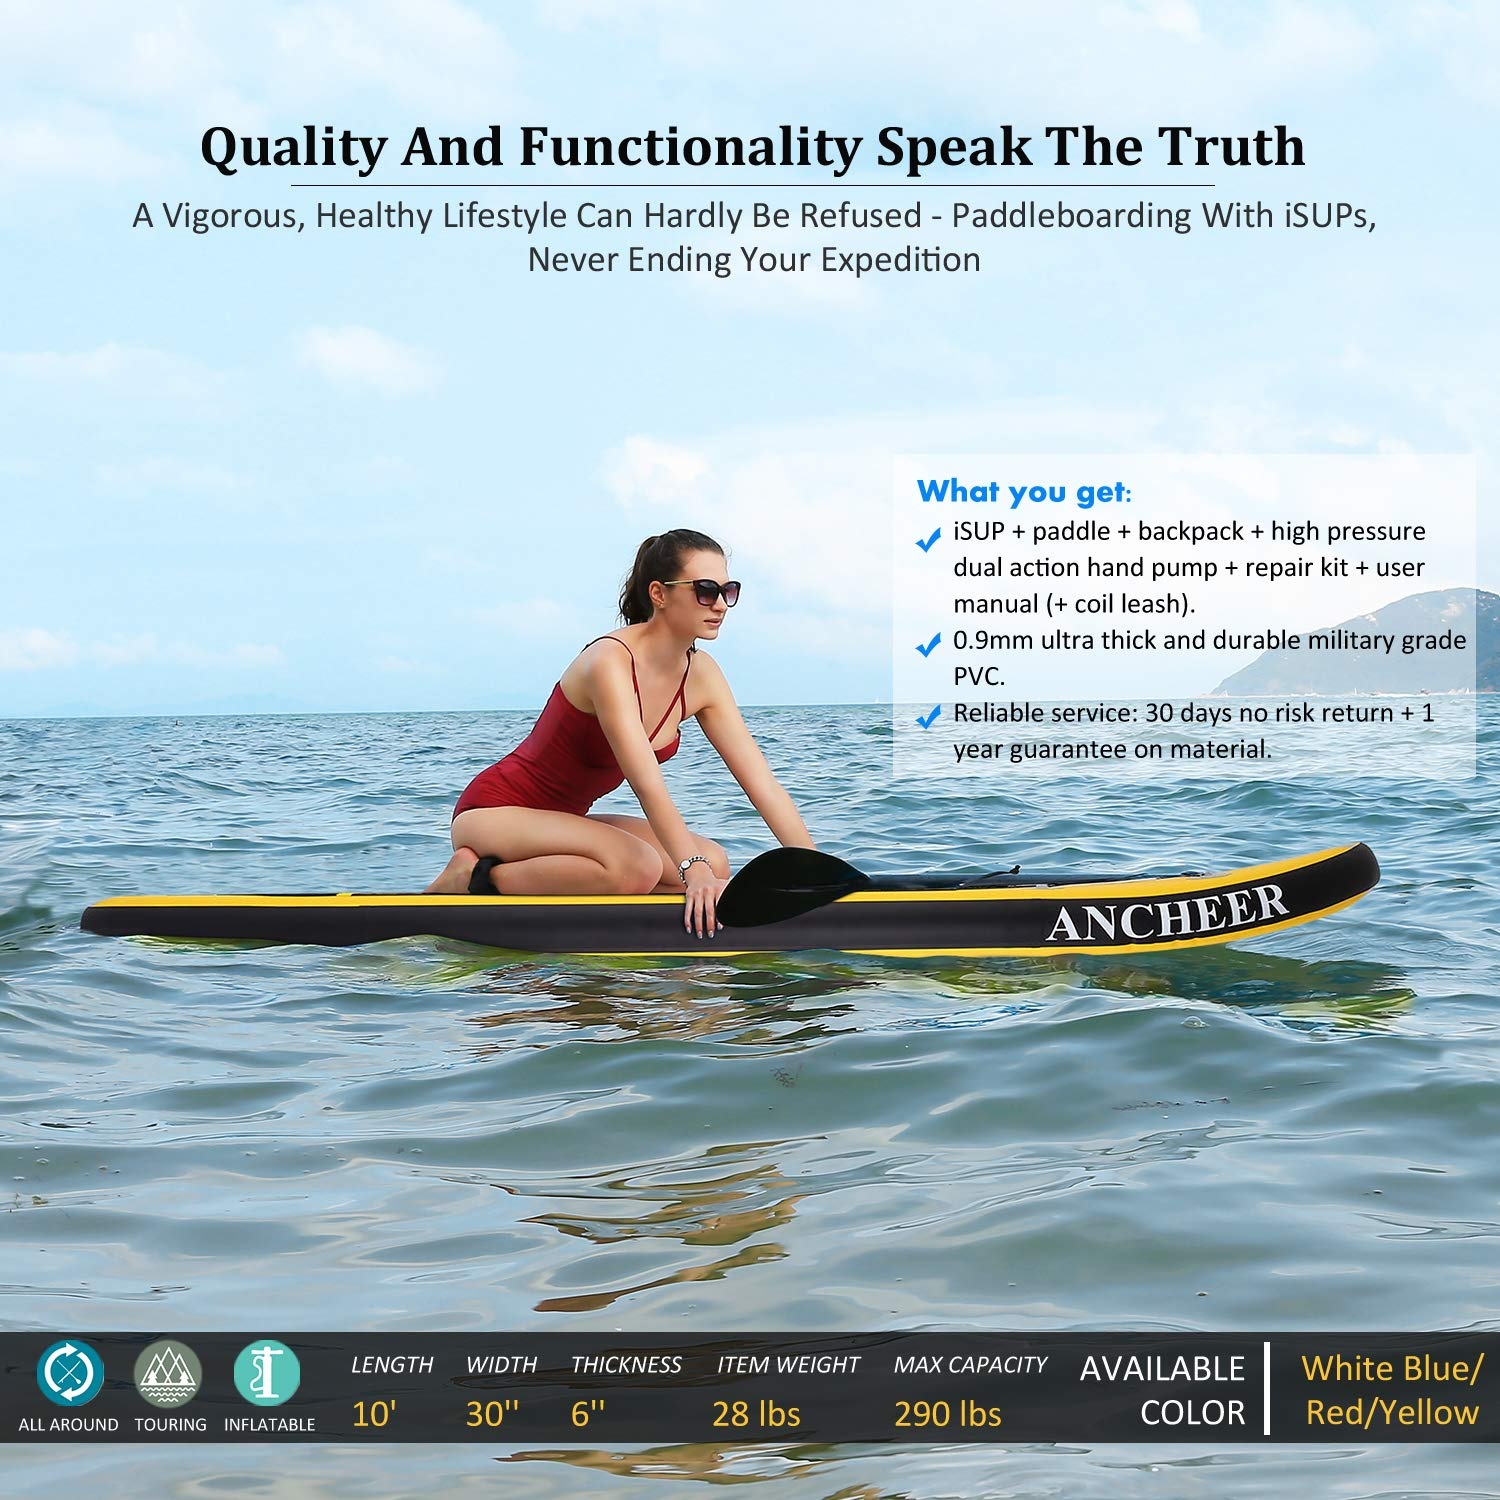 ANCHEER Inflatable Stand Up Paddle Board 10', Non-Slip Deck(6 Inches Thick), iSUP Boards Package w/Adjustable Paddle, Leash, Hand Pump and Backpack, Youth & Adult by ANCHEER (Image #2)